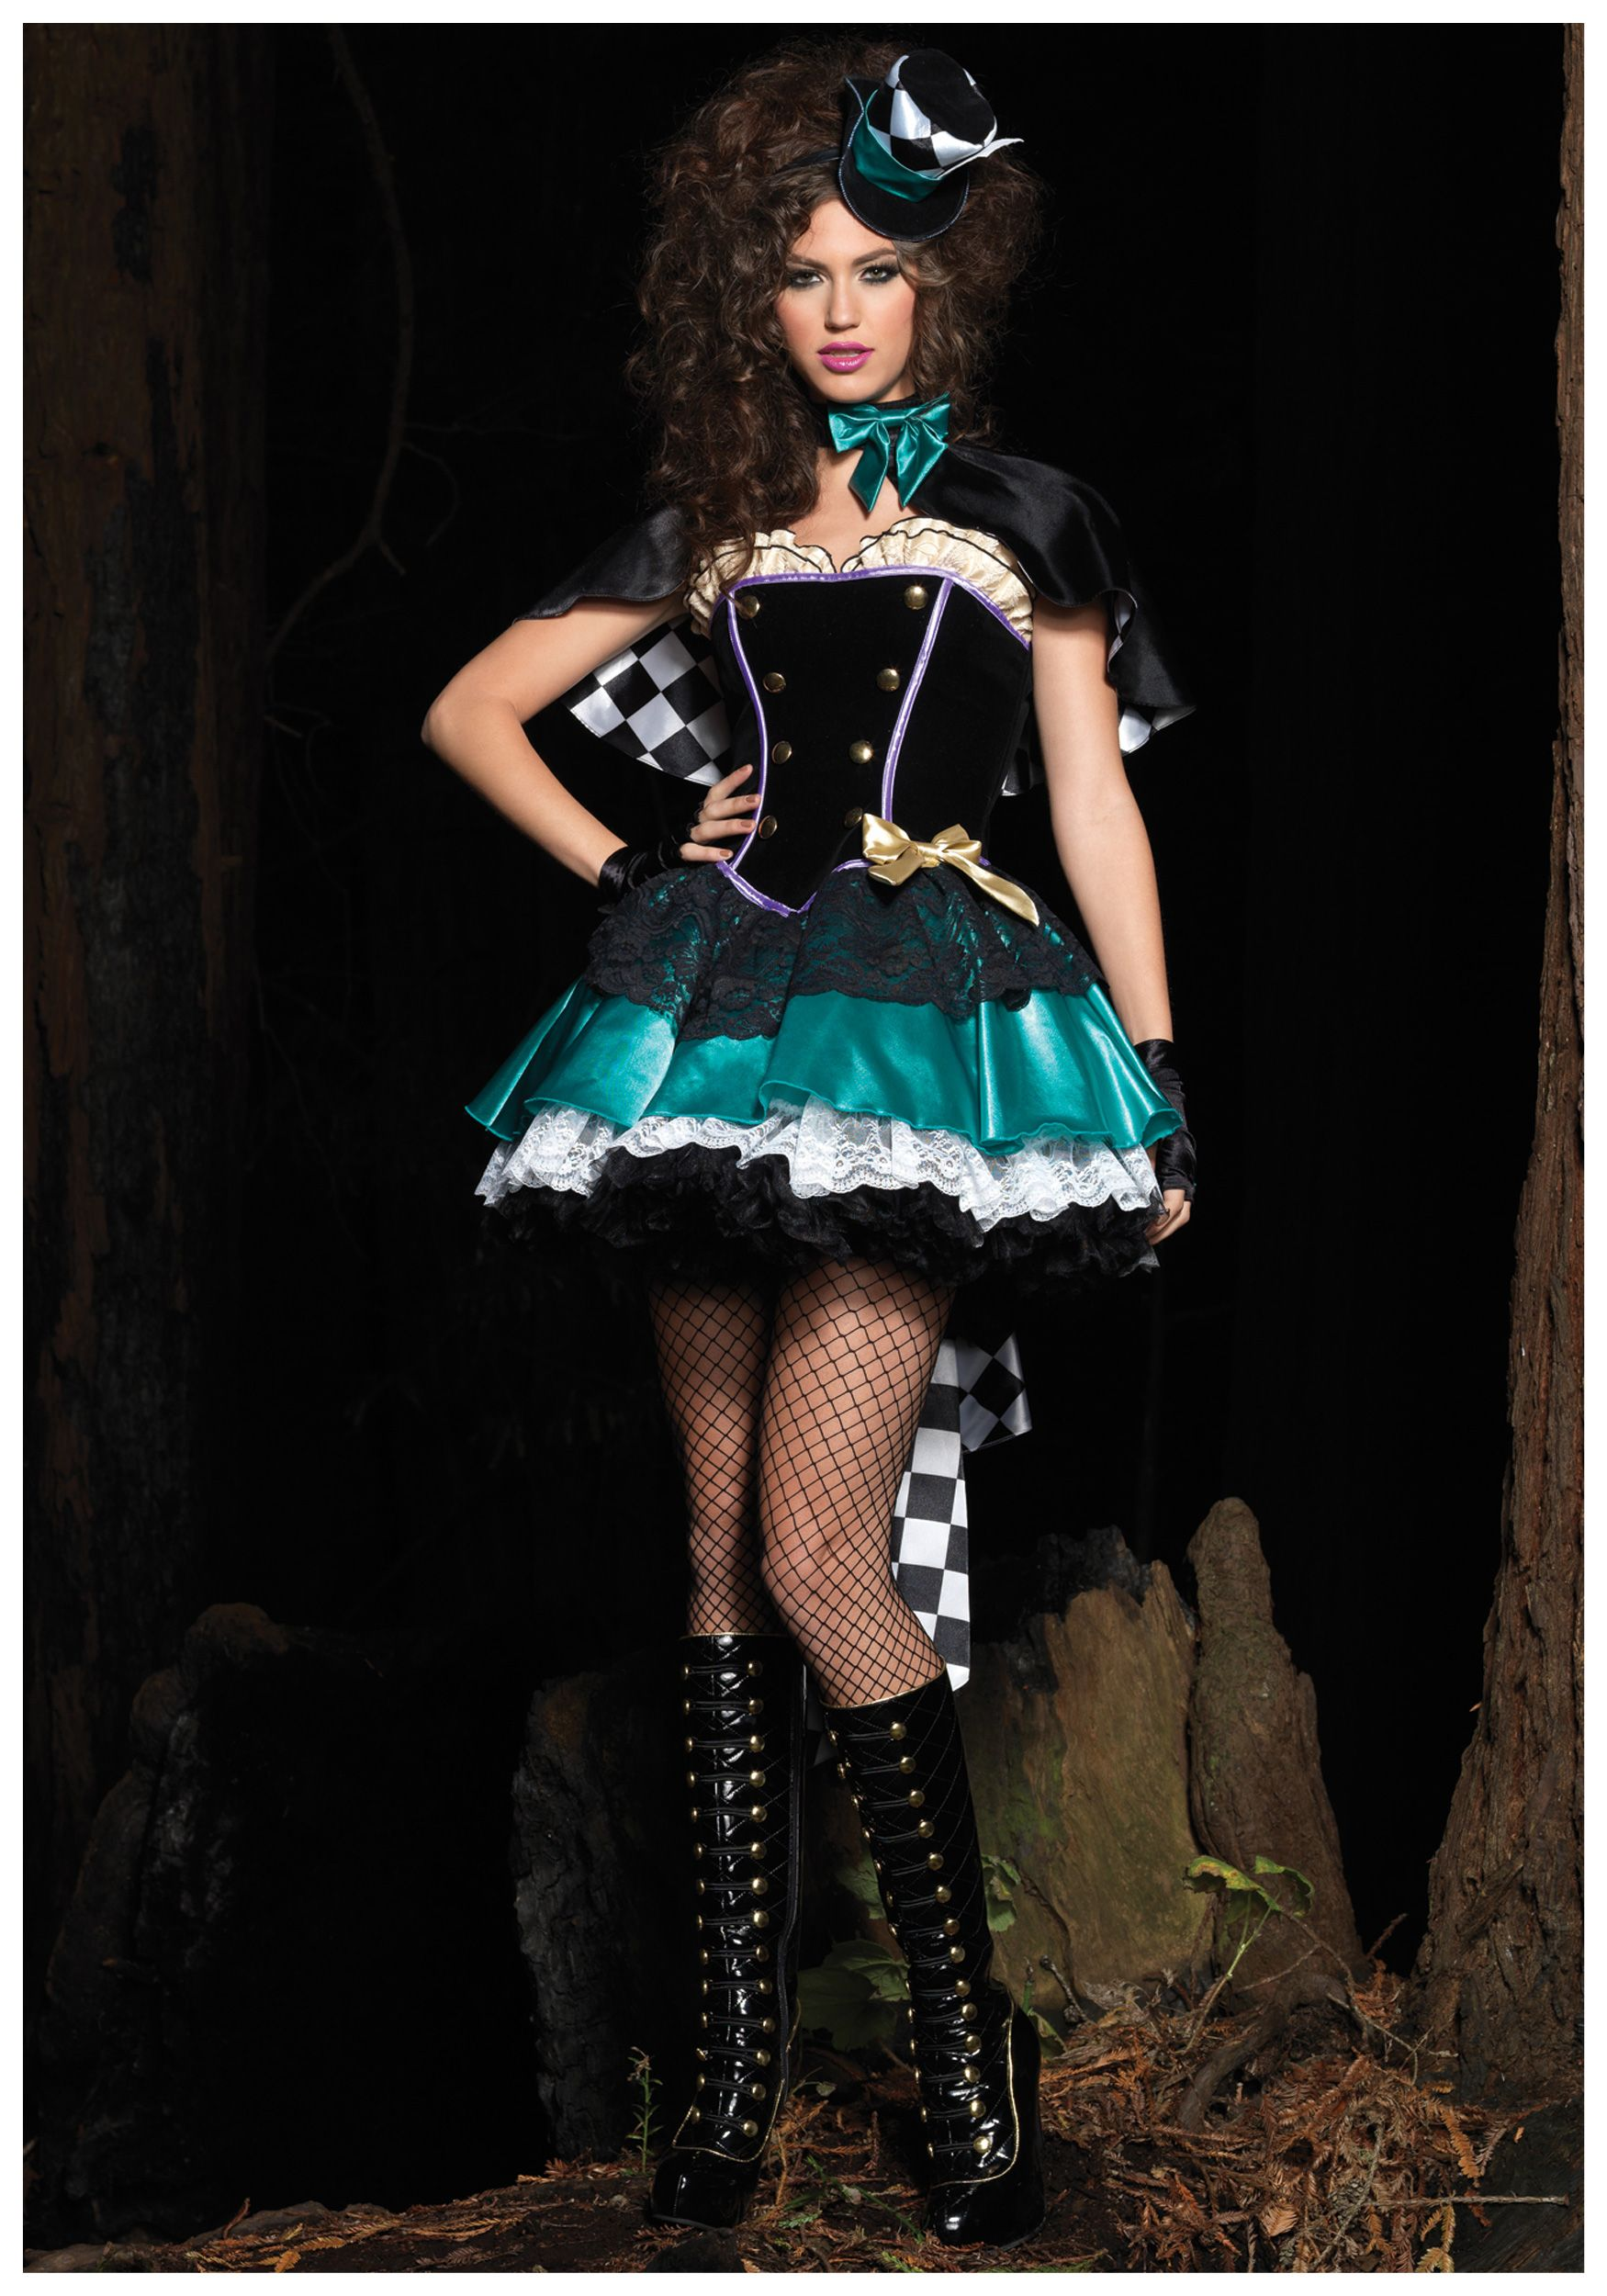 Deluxe Tea Time Mad Hatter Costume Mad hatter costume